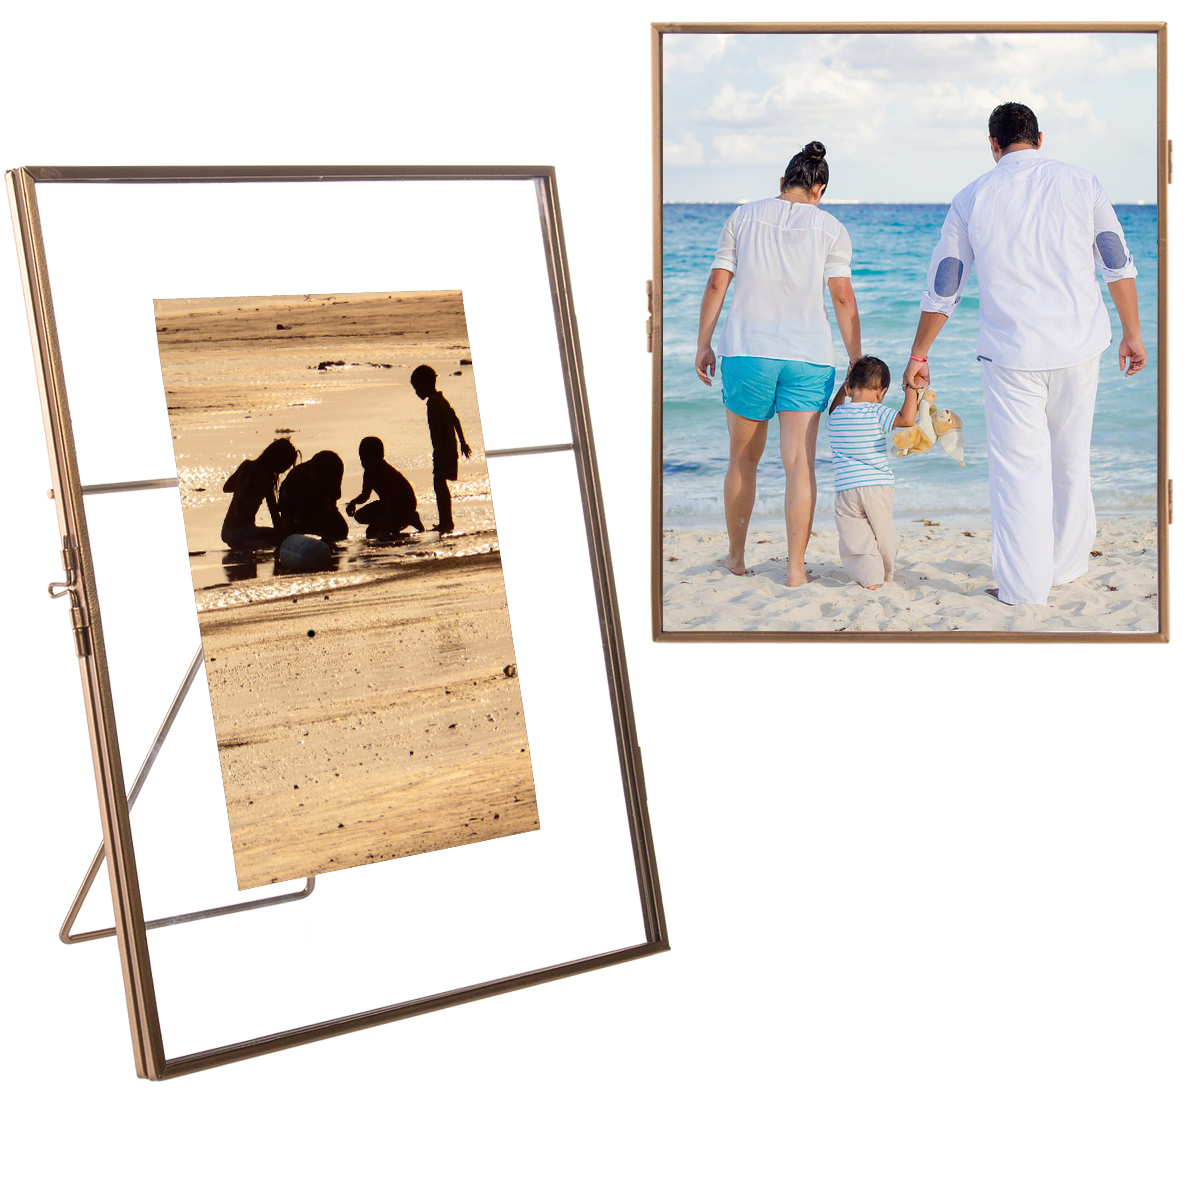 Concepts In Time (2 Pack) Floating Metallic Picture Frames Free Standing Glass For 5x7 Or 8x10 Photos